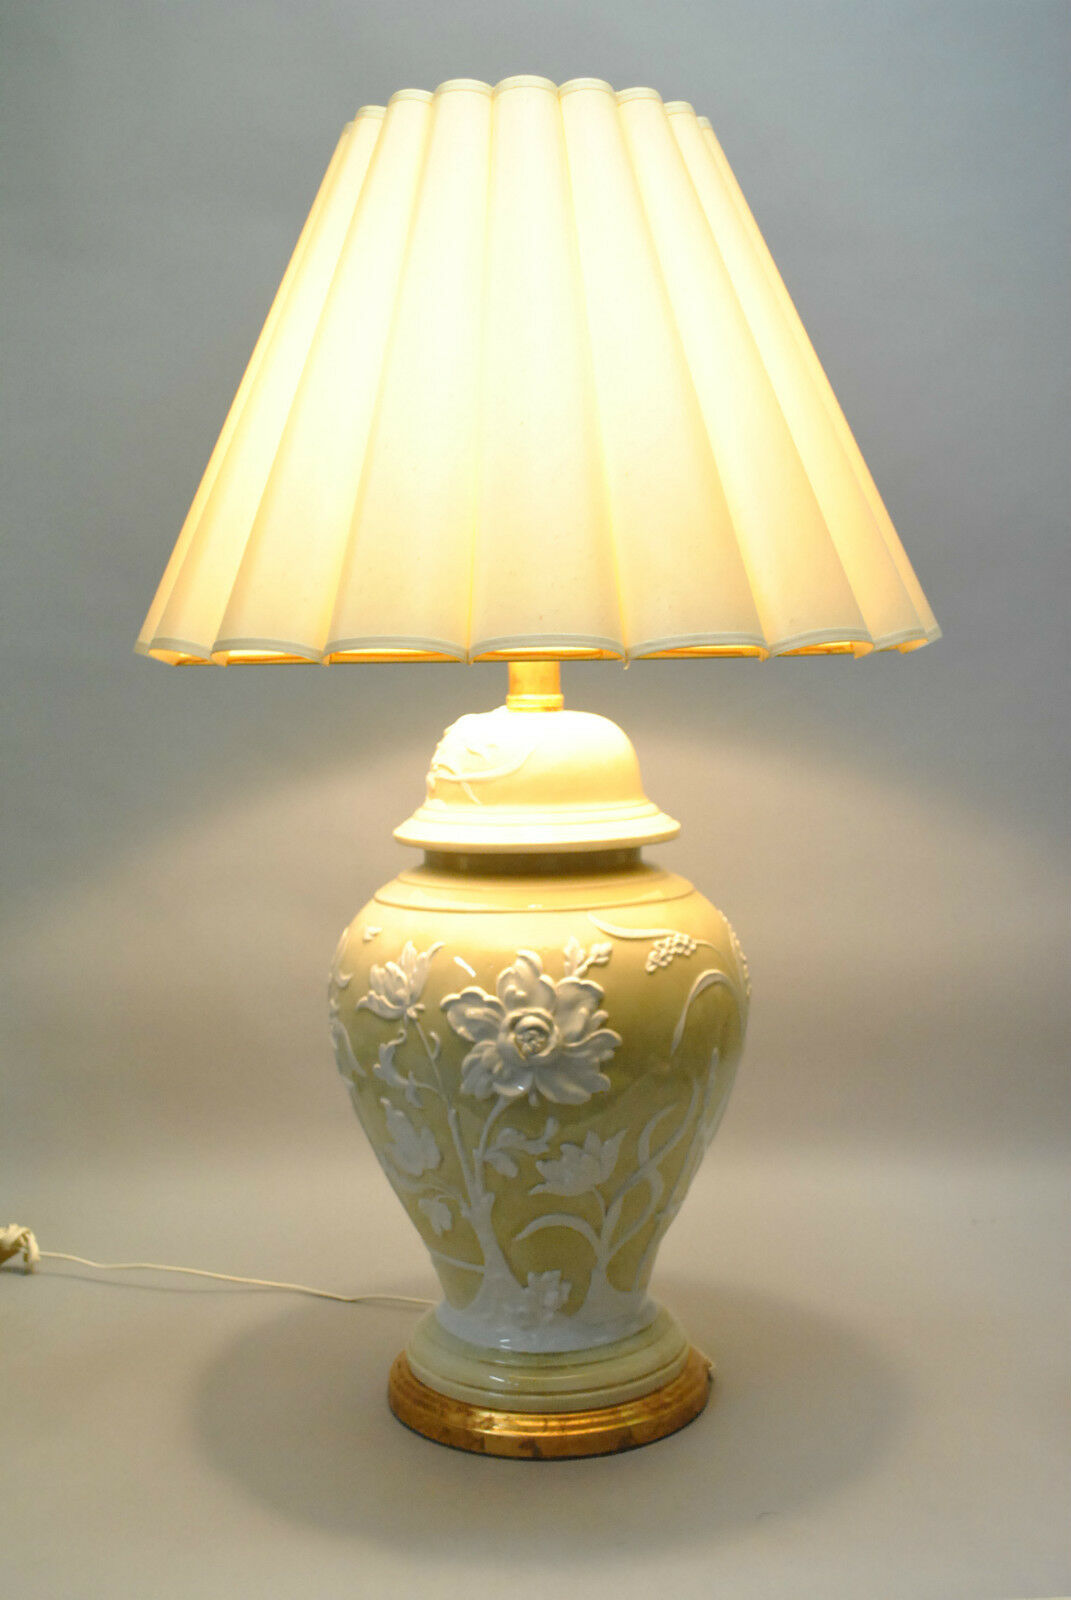 Vintage Oversized Ceramic Lamp In Pale Gold With Raised